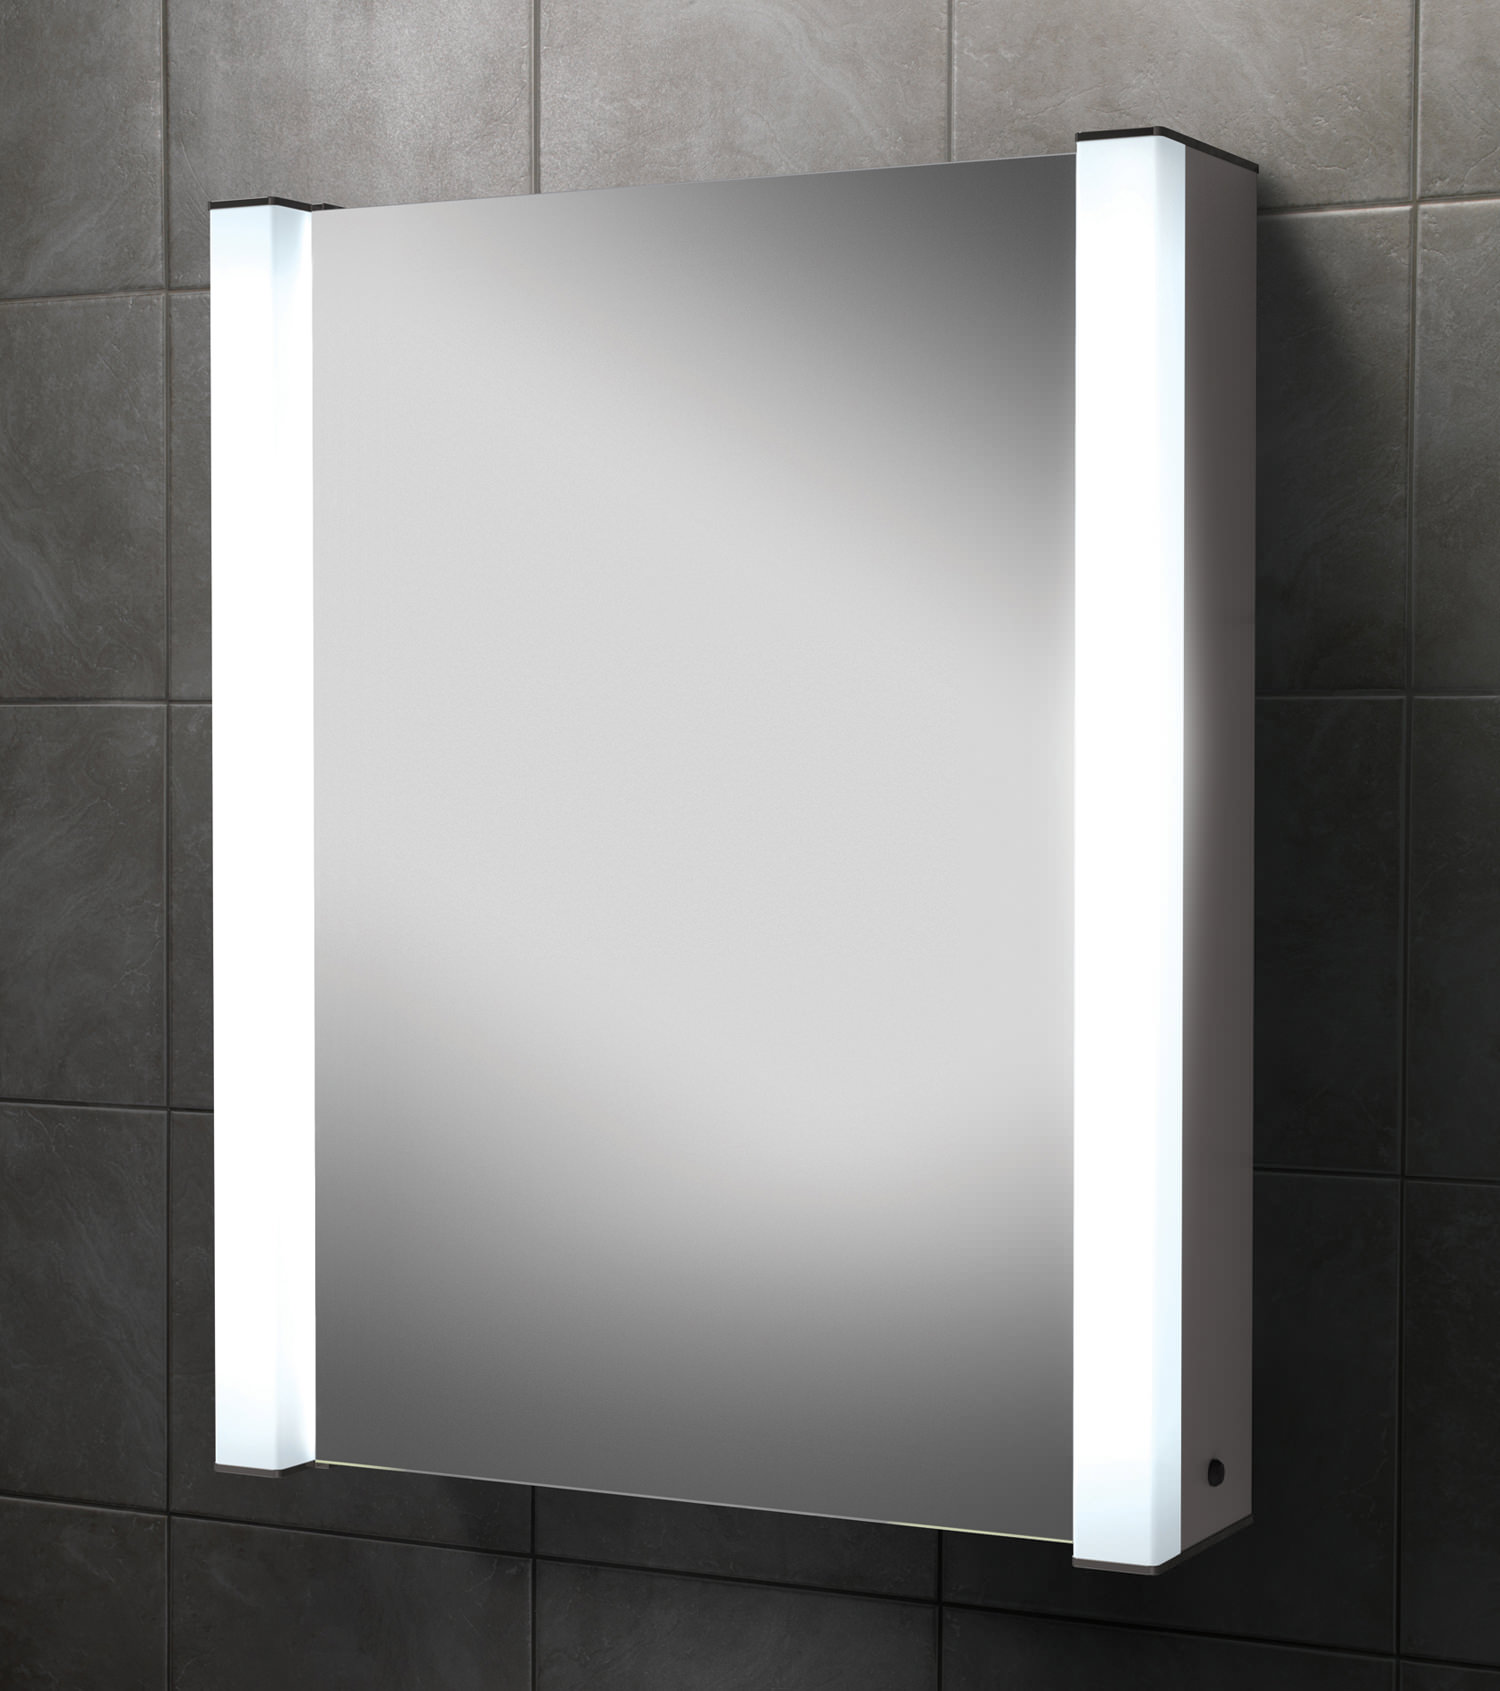 HIB Velocity Single Door Illuminated Aluminium Mirrored Cabinet ...